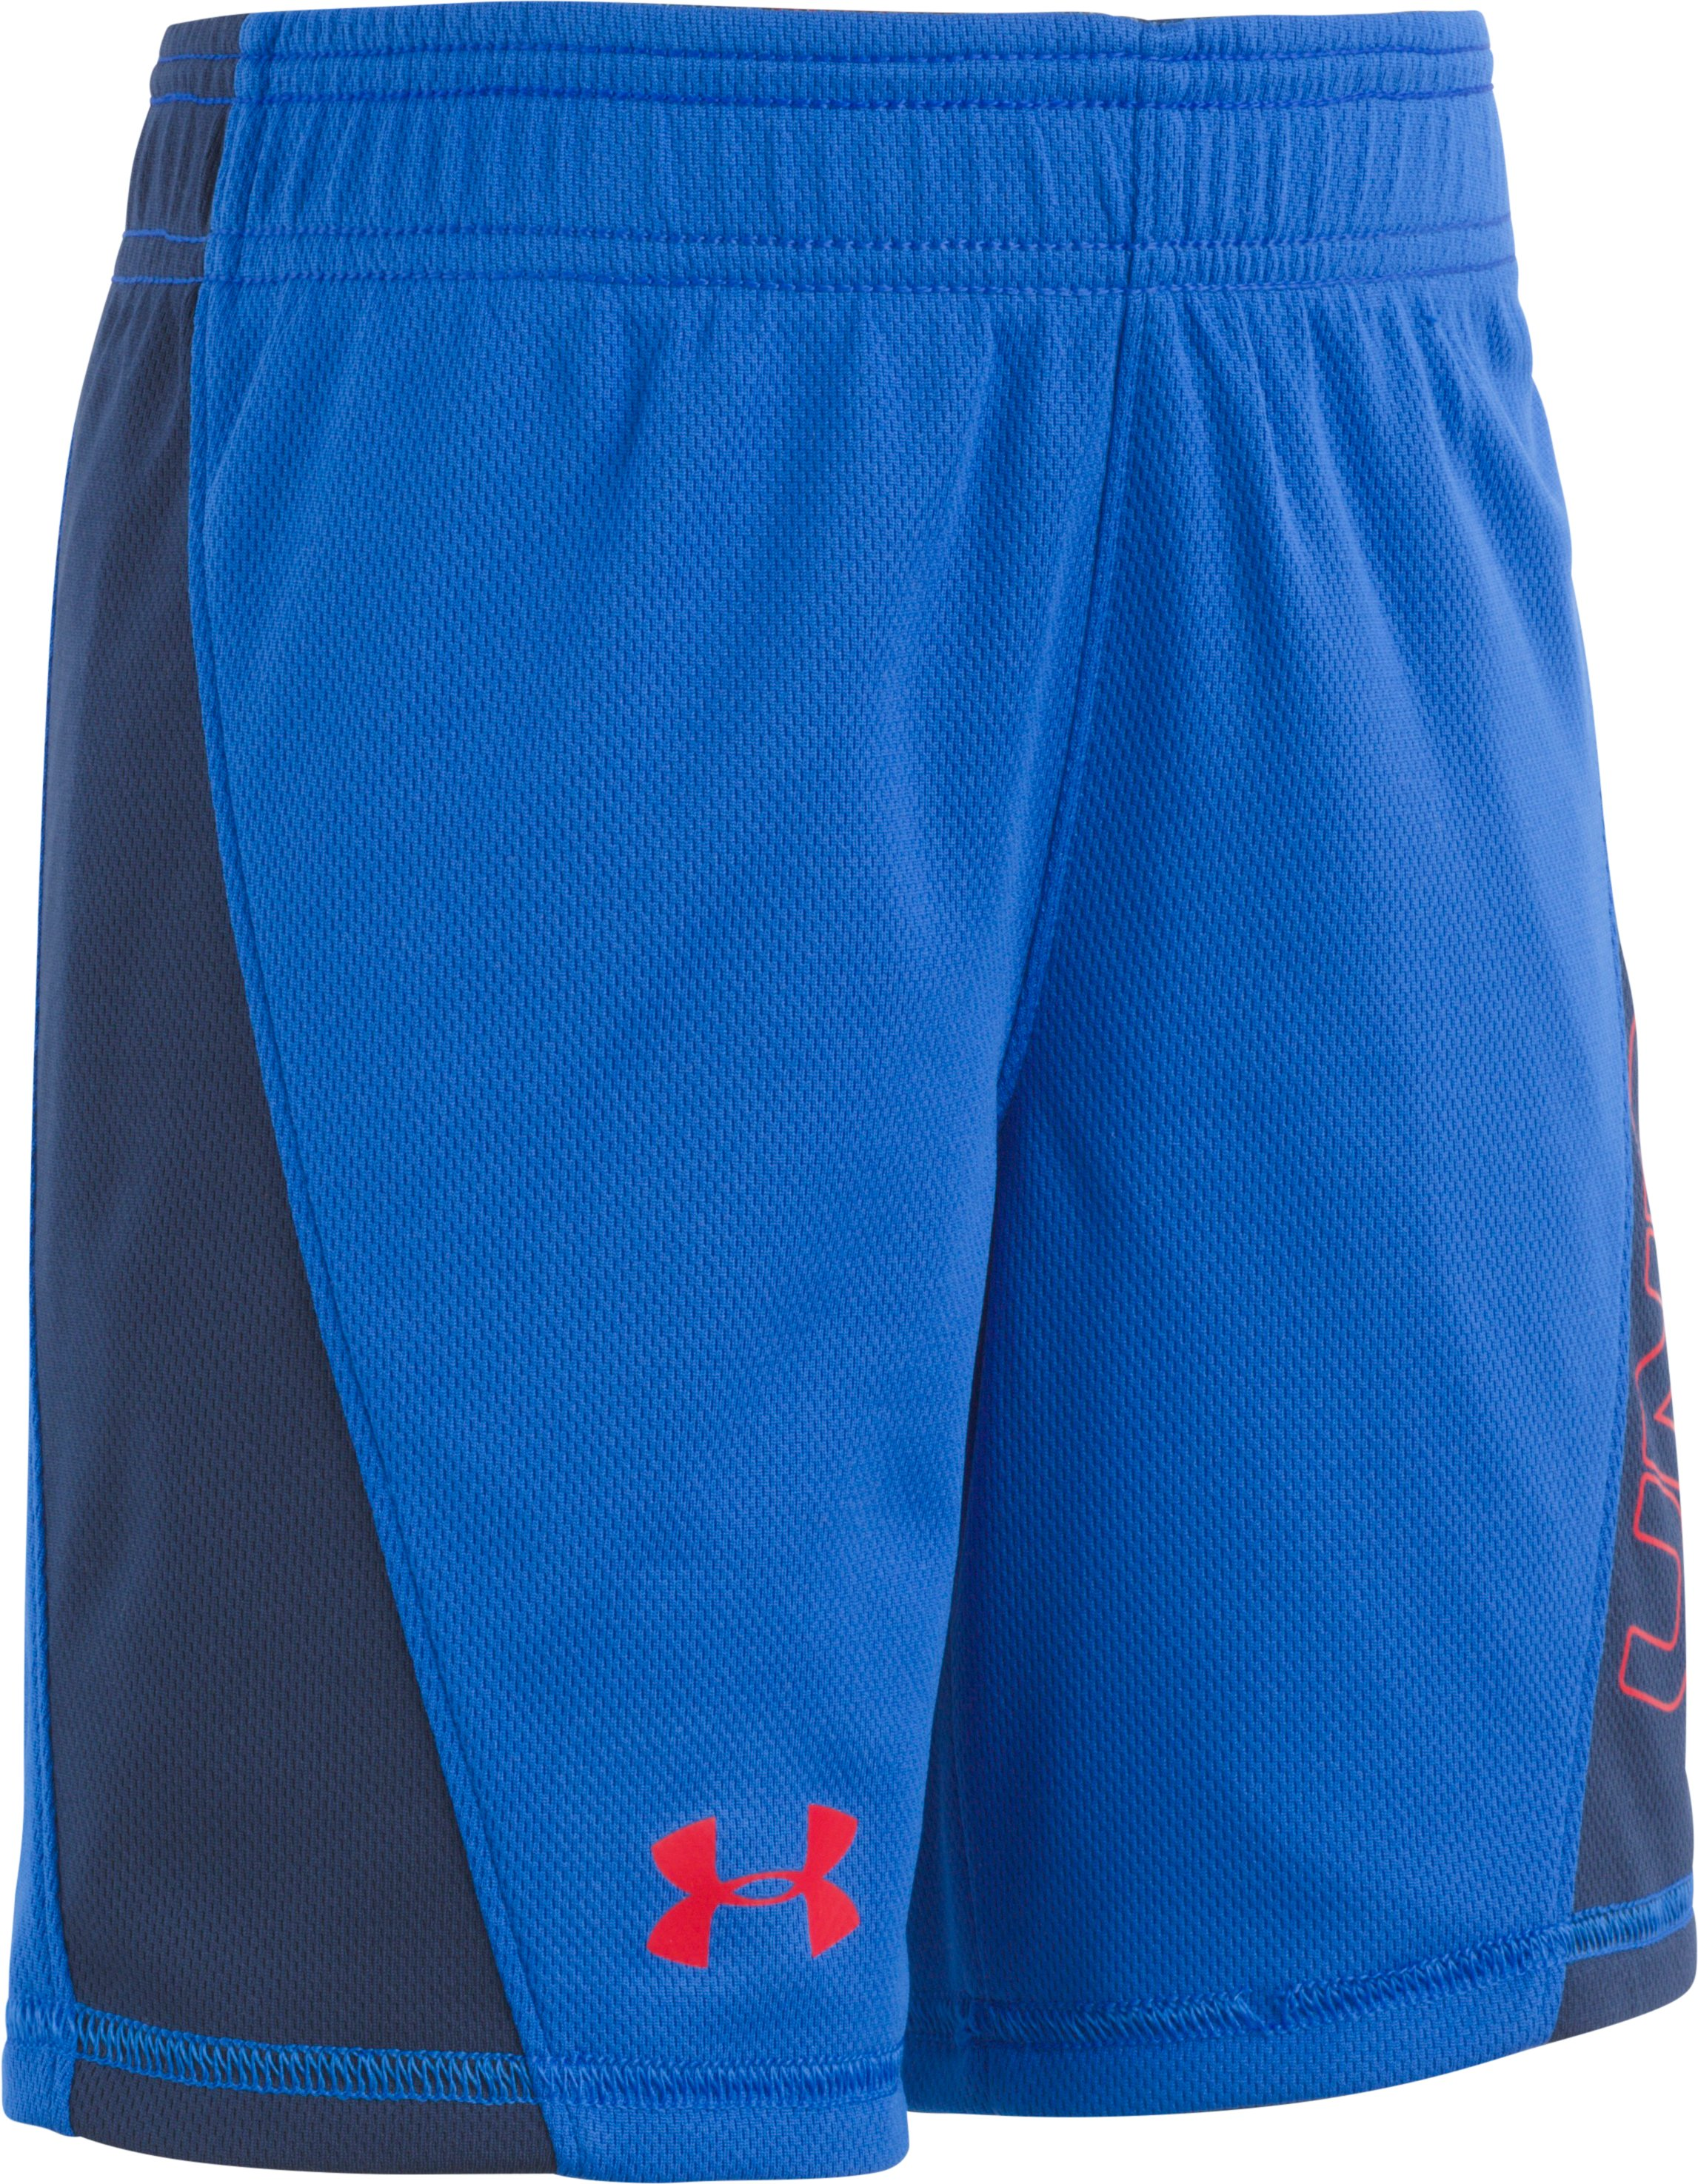 Boys' Pre-School UA Electric Fields Reversible Shorts, ULTRA BLUE, zoomed